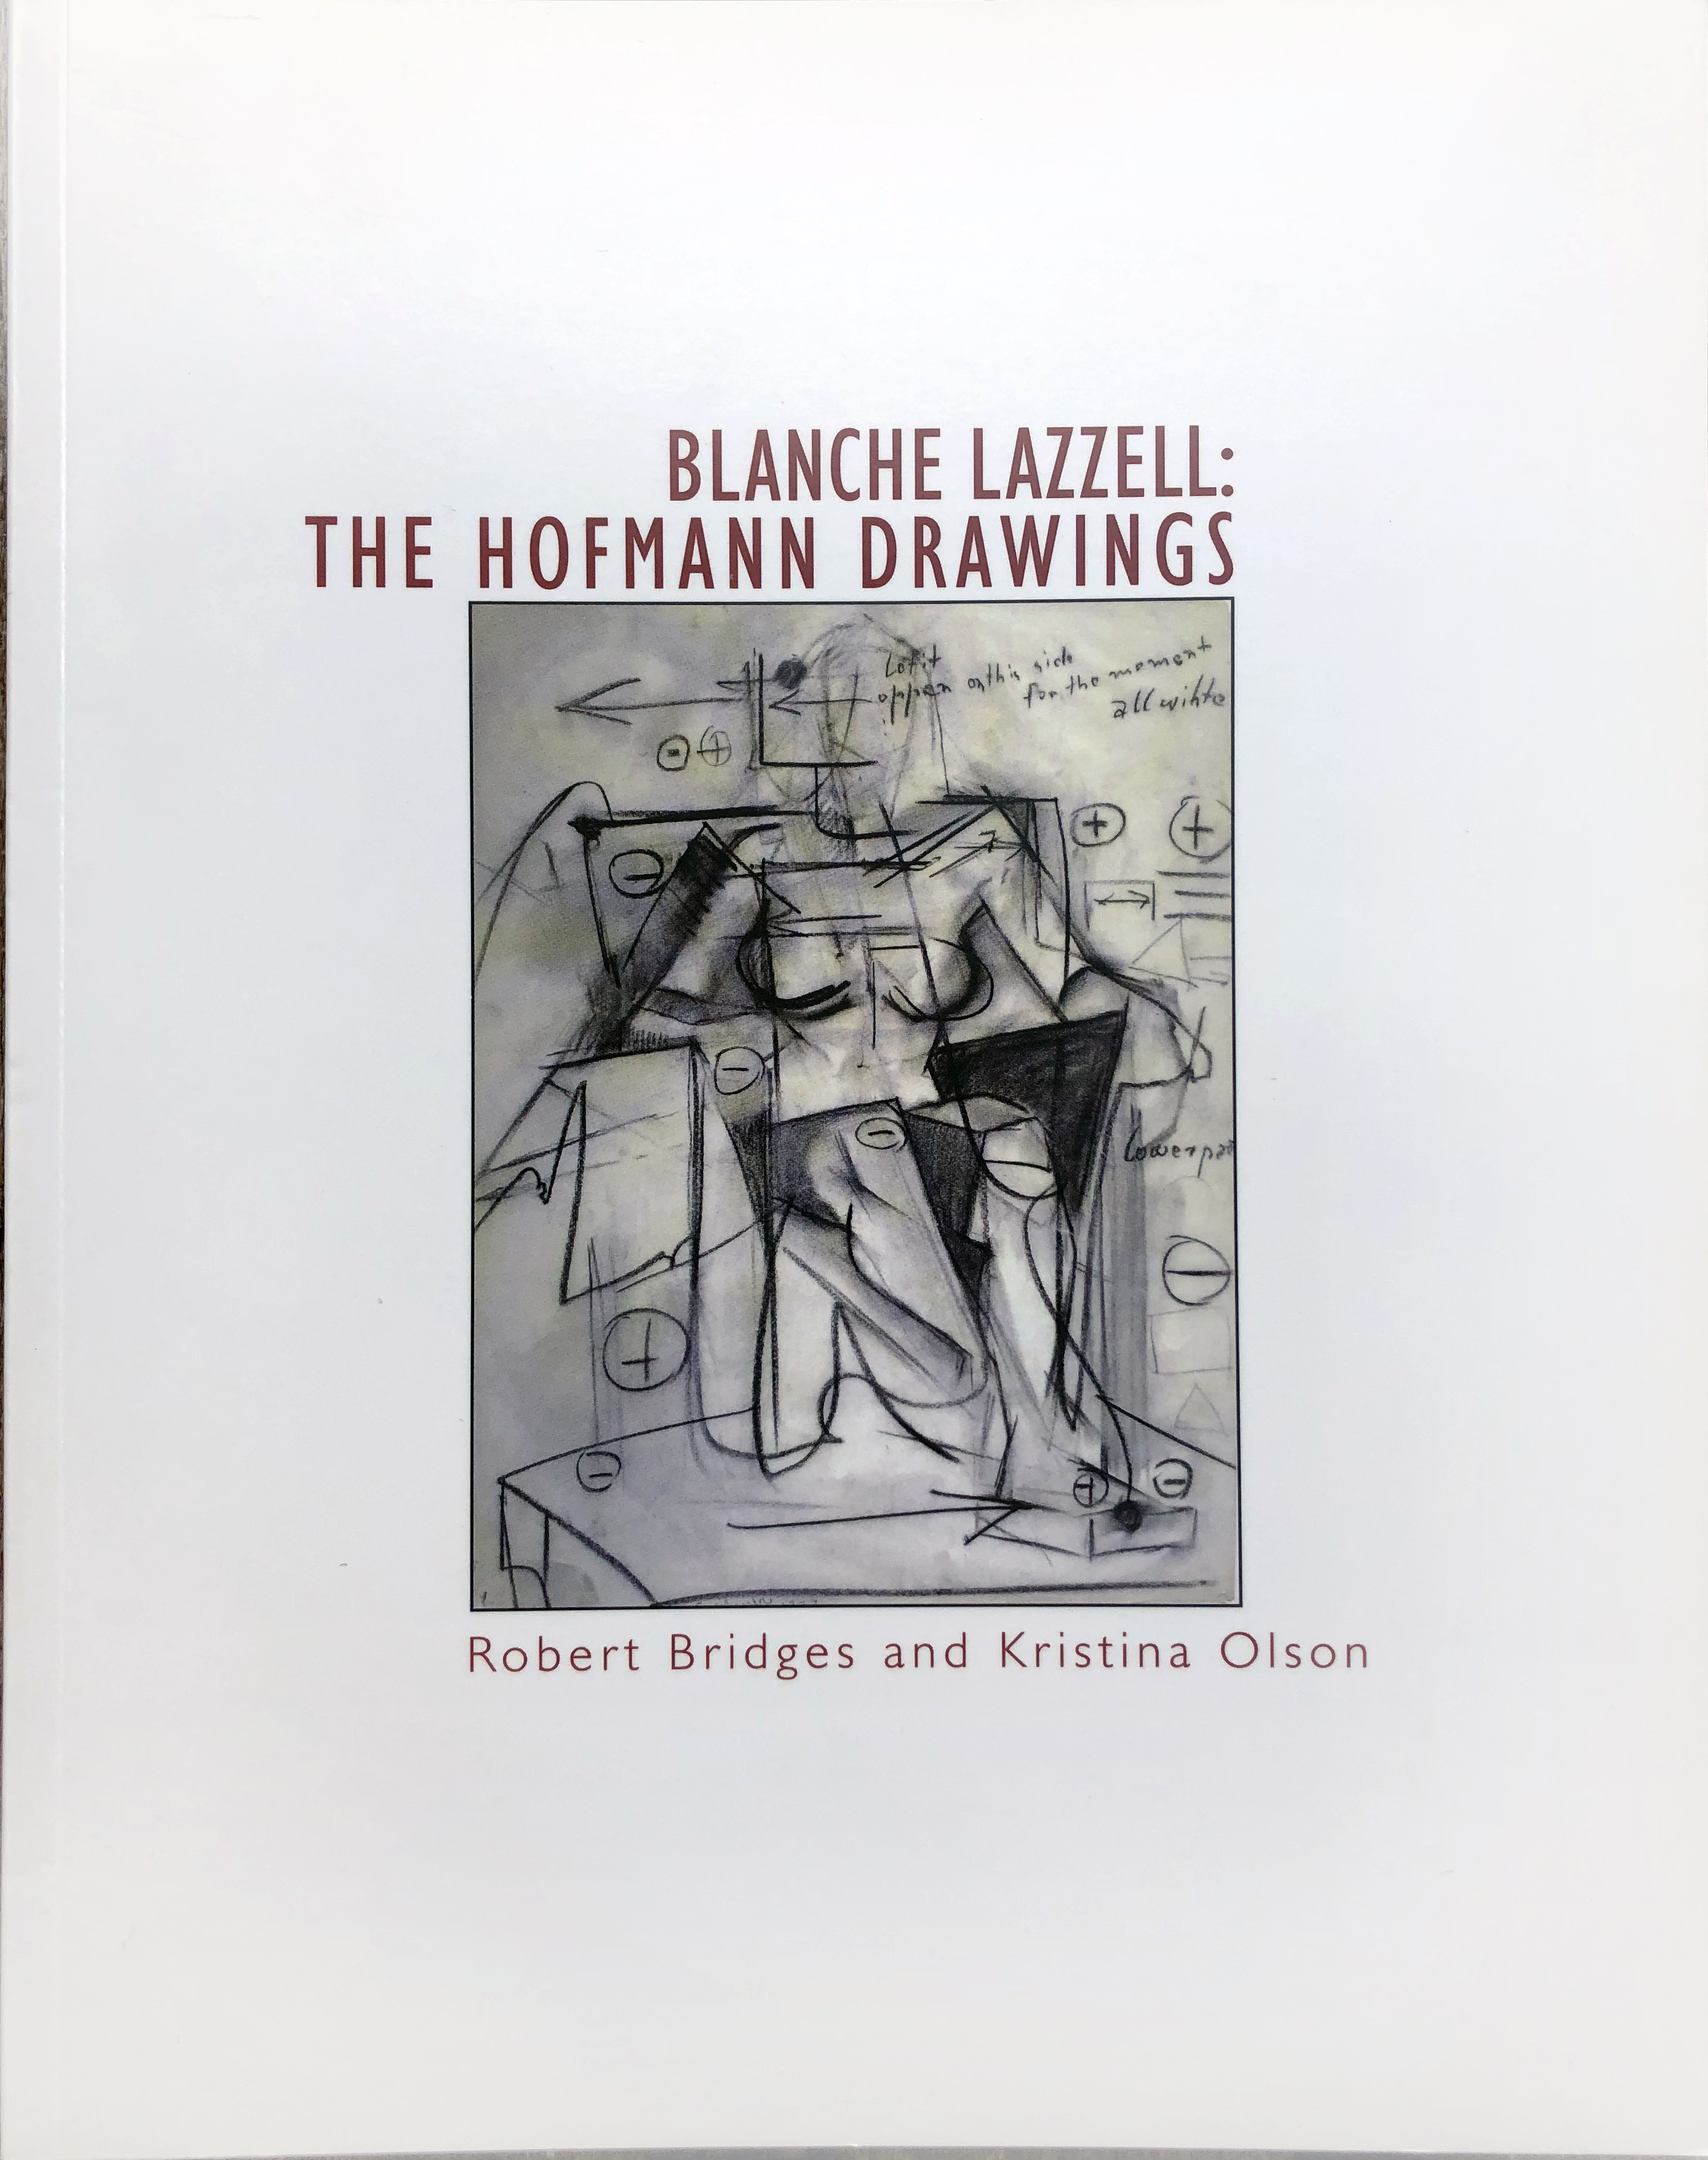 Blanche Lazzell: The Hofmann Drawings catalogue cover